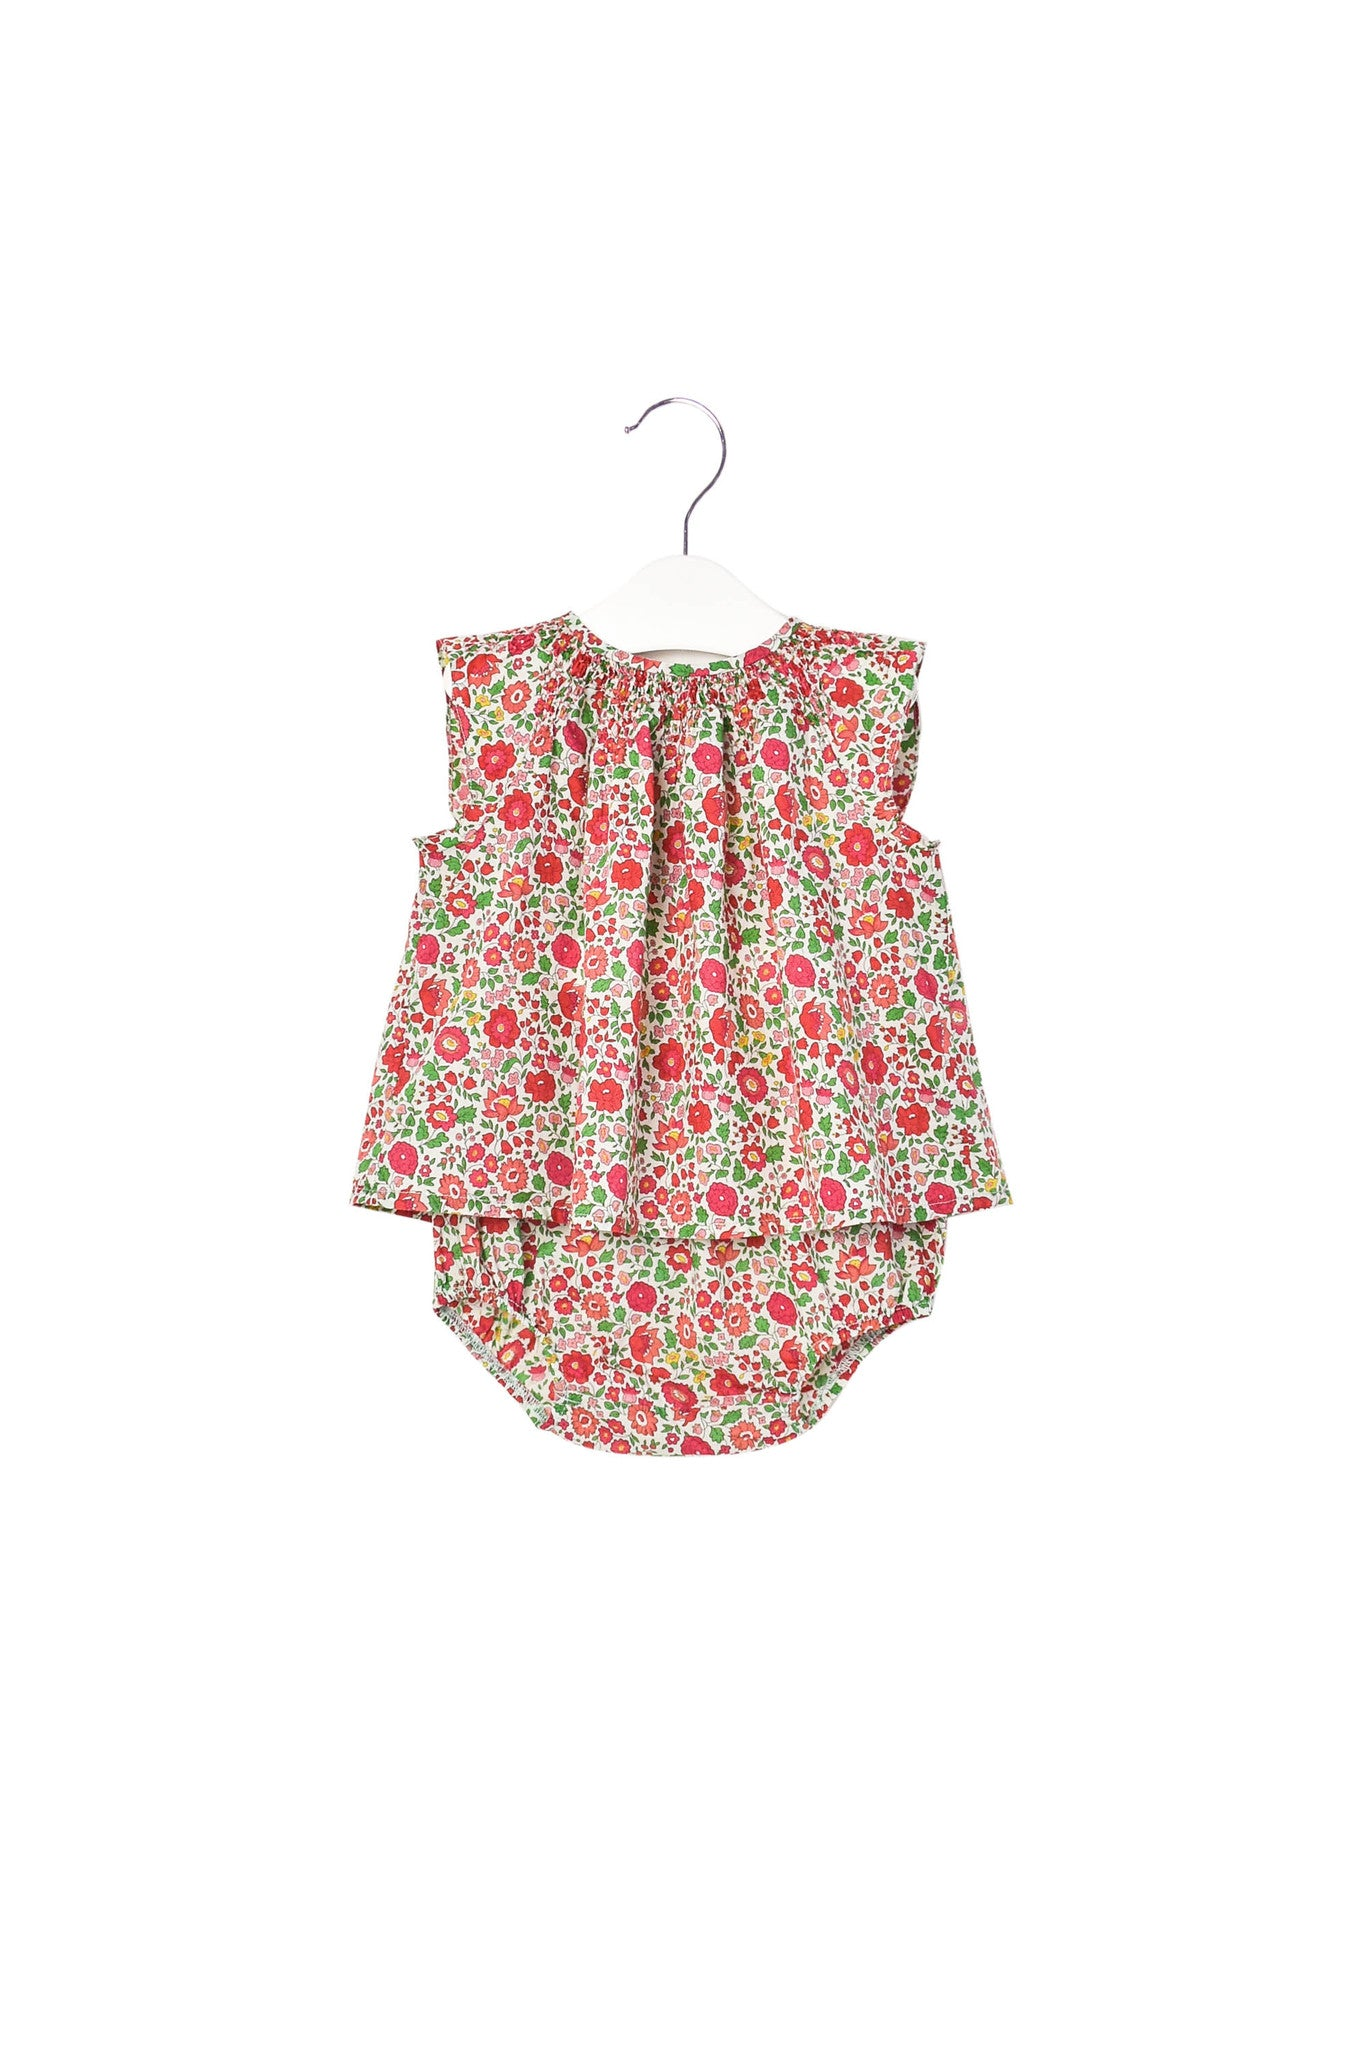 cd7221542 10003627 Bonpoint Baby~Top and Bloomer 12M at Retykle